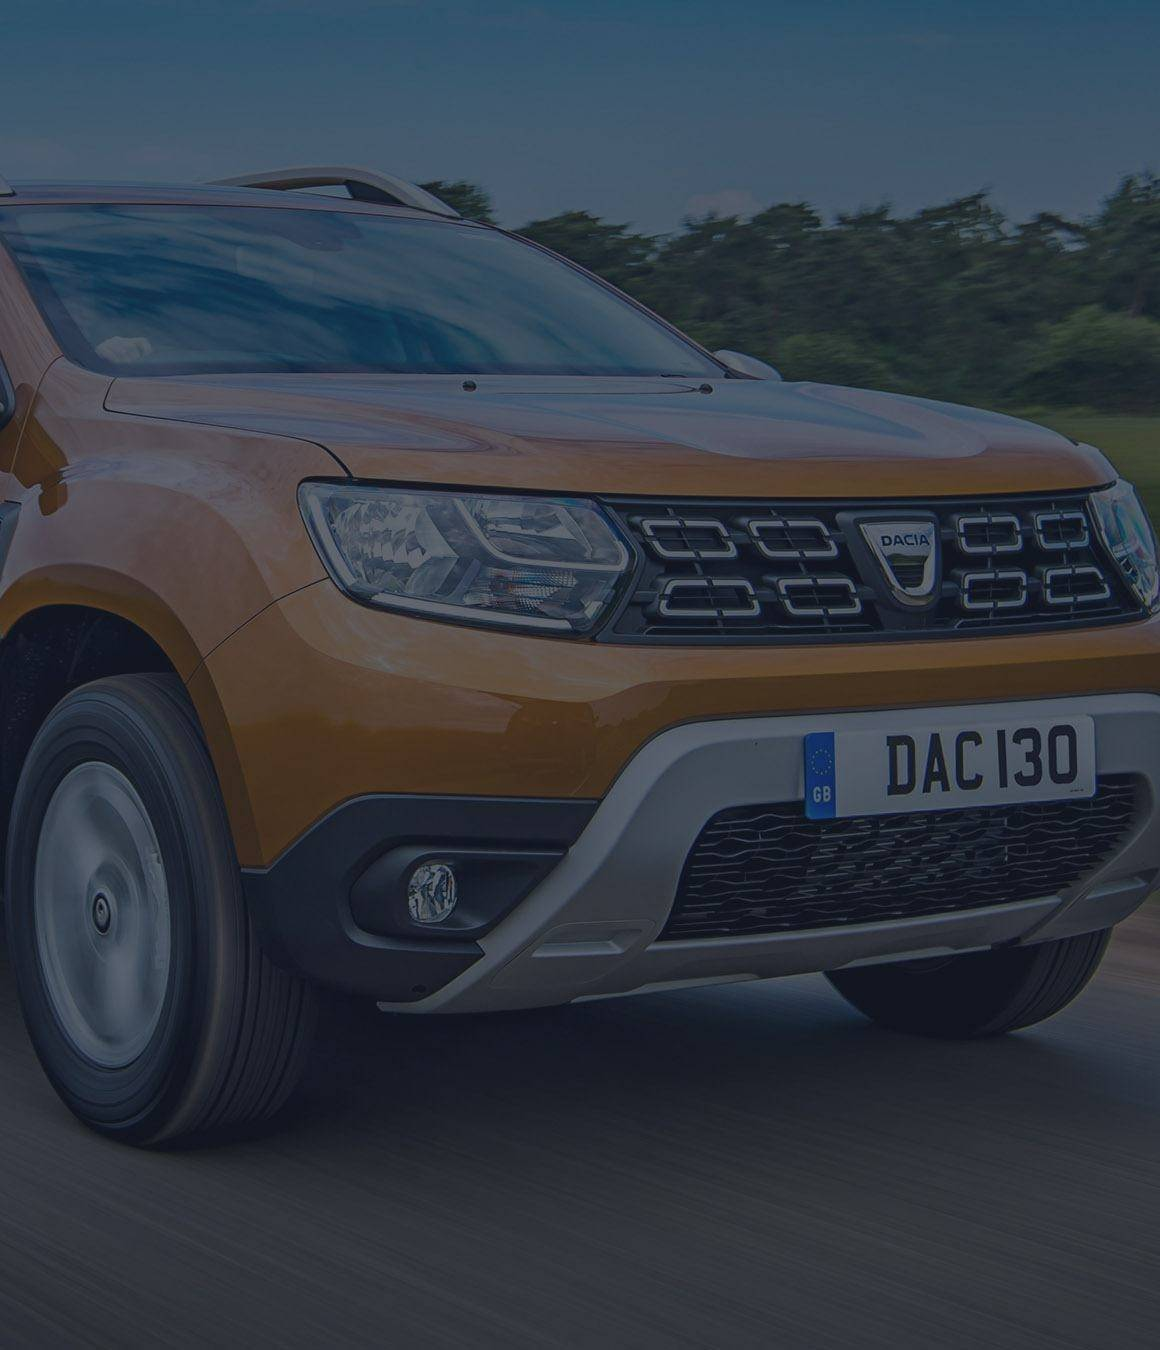 Dacia car insurance quote online